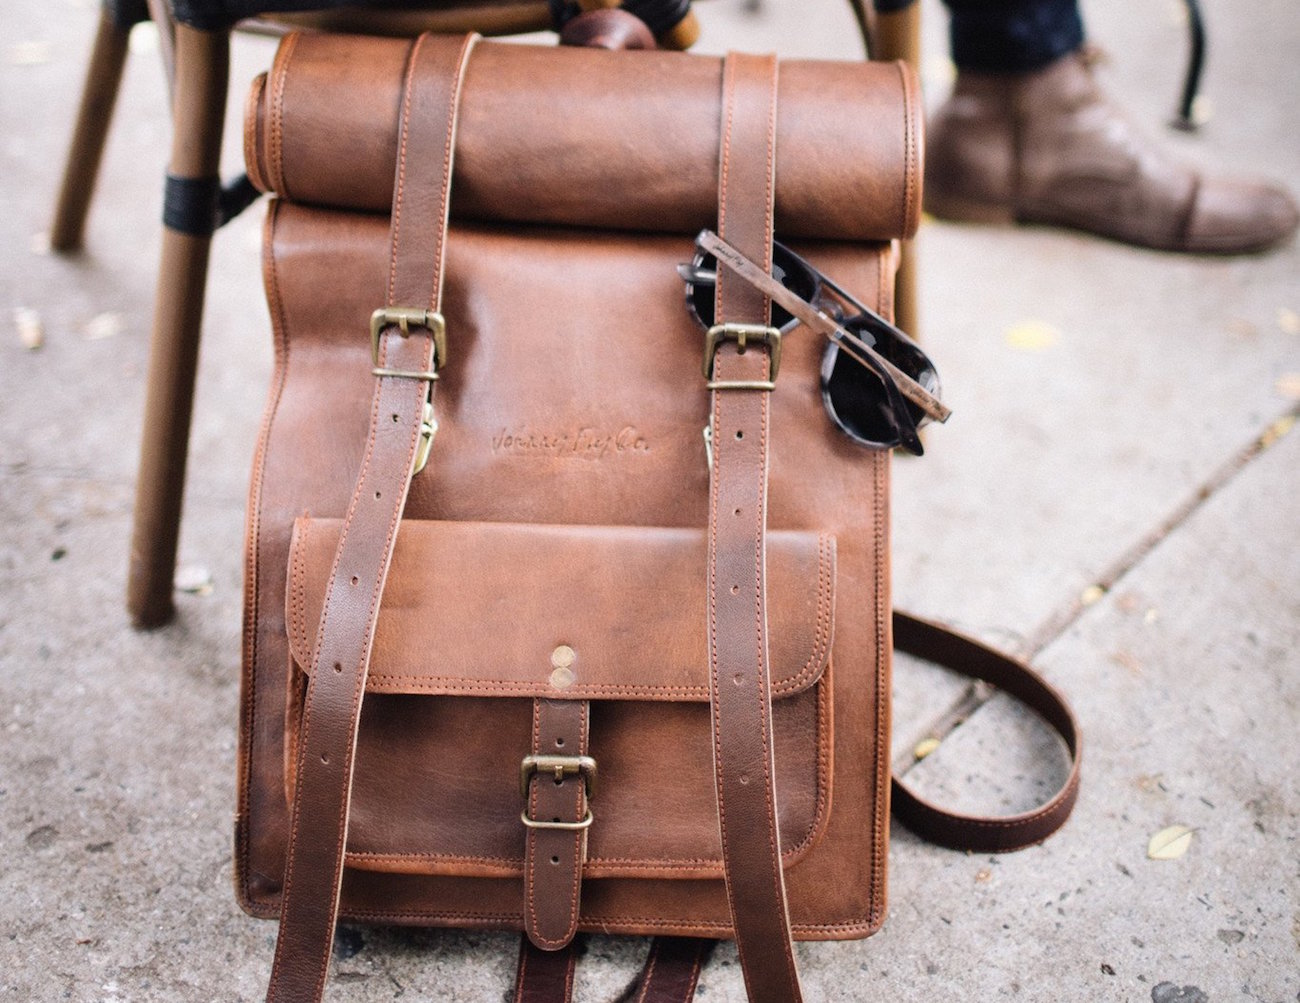 Leather Rolltop Backpack by Johnny Fly Co